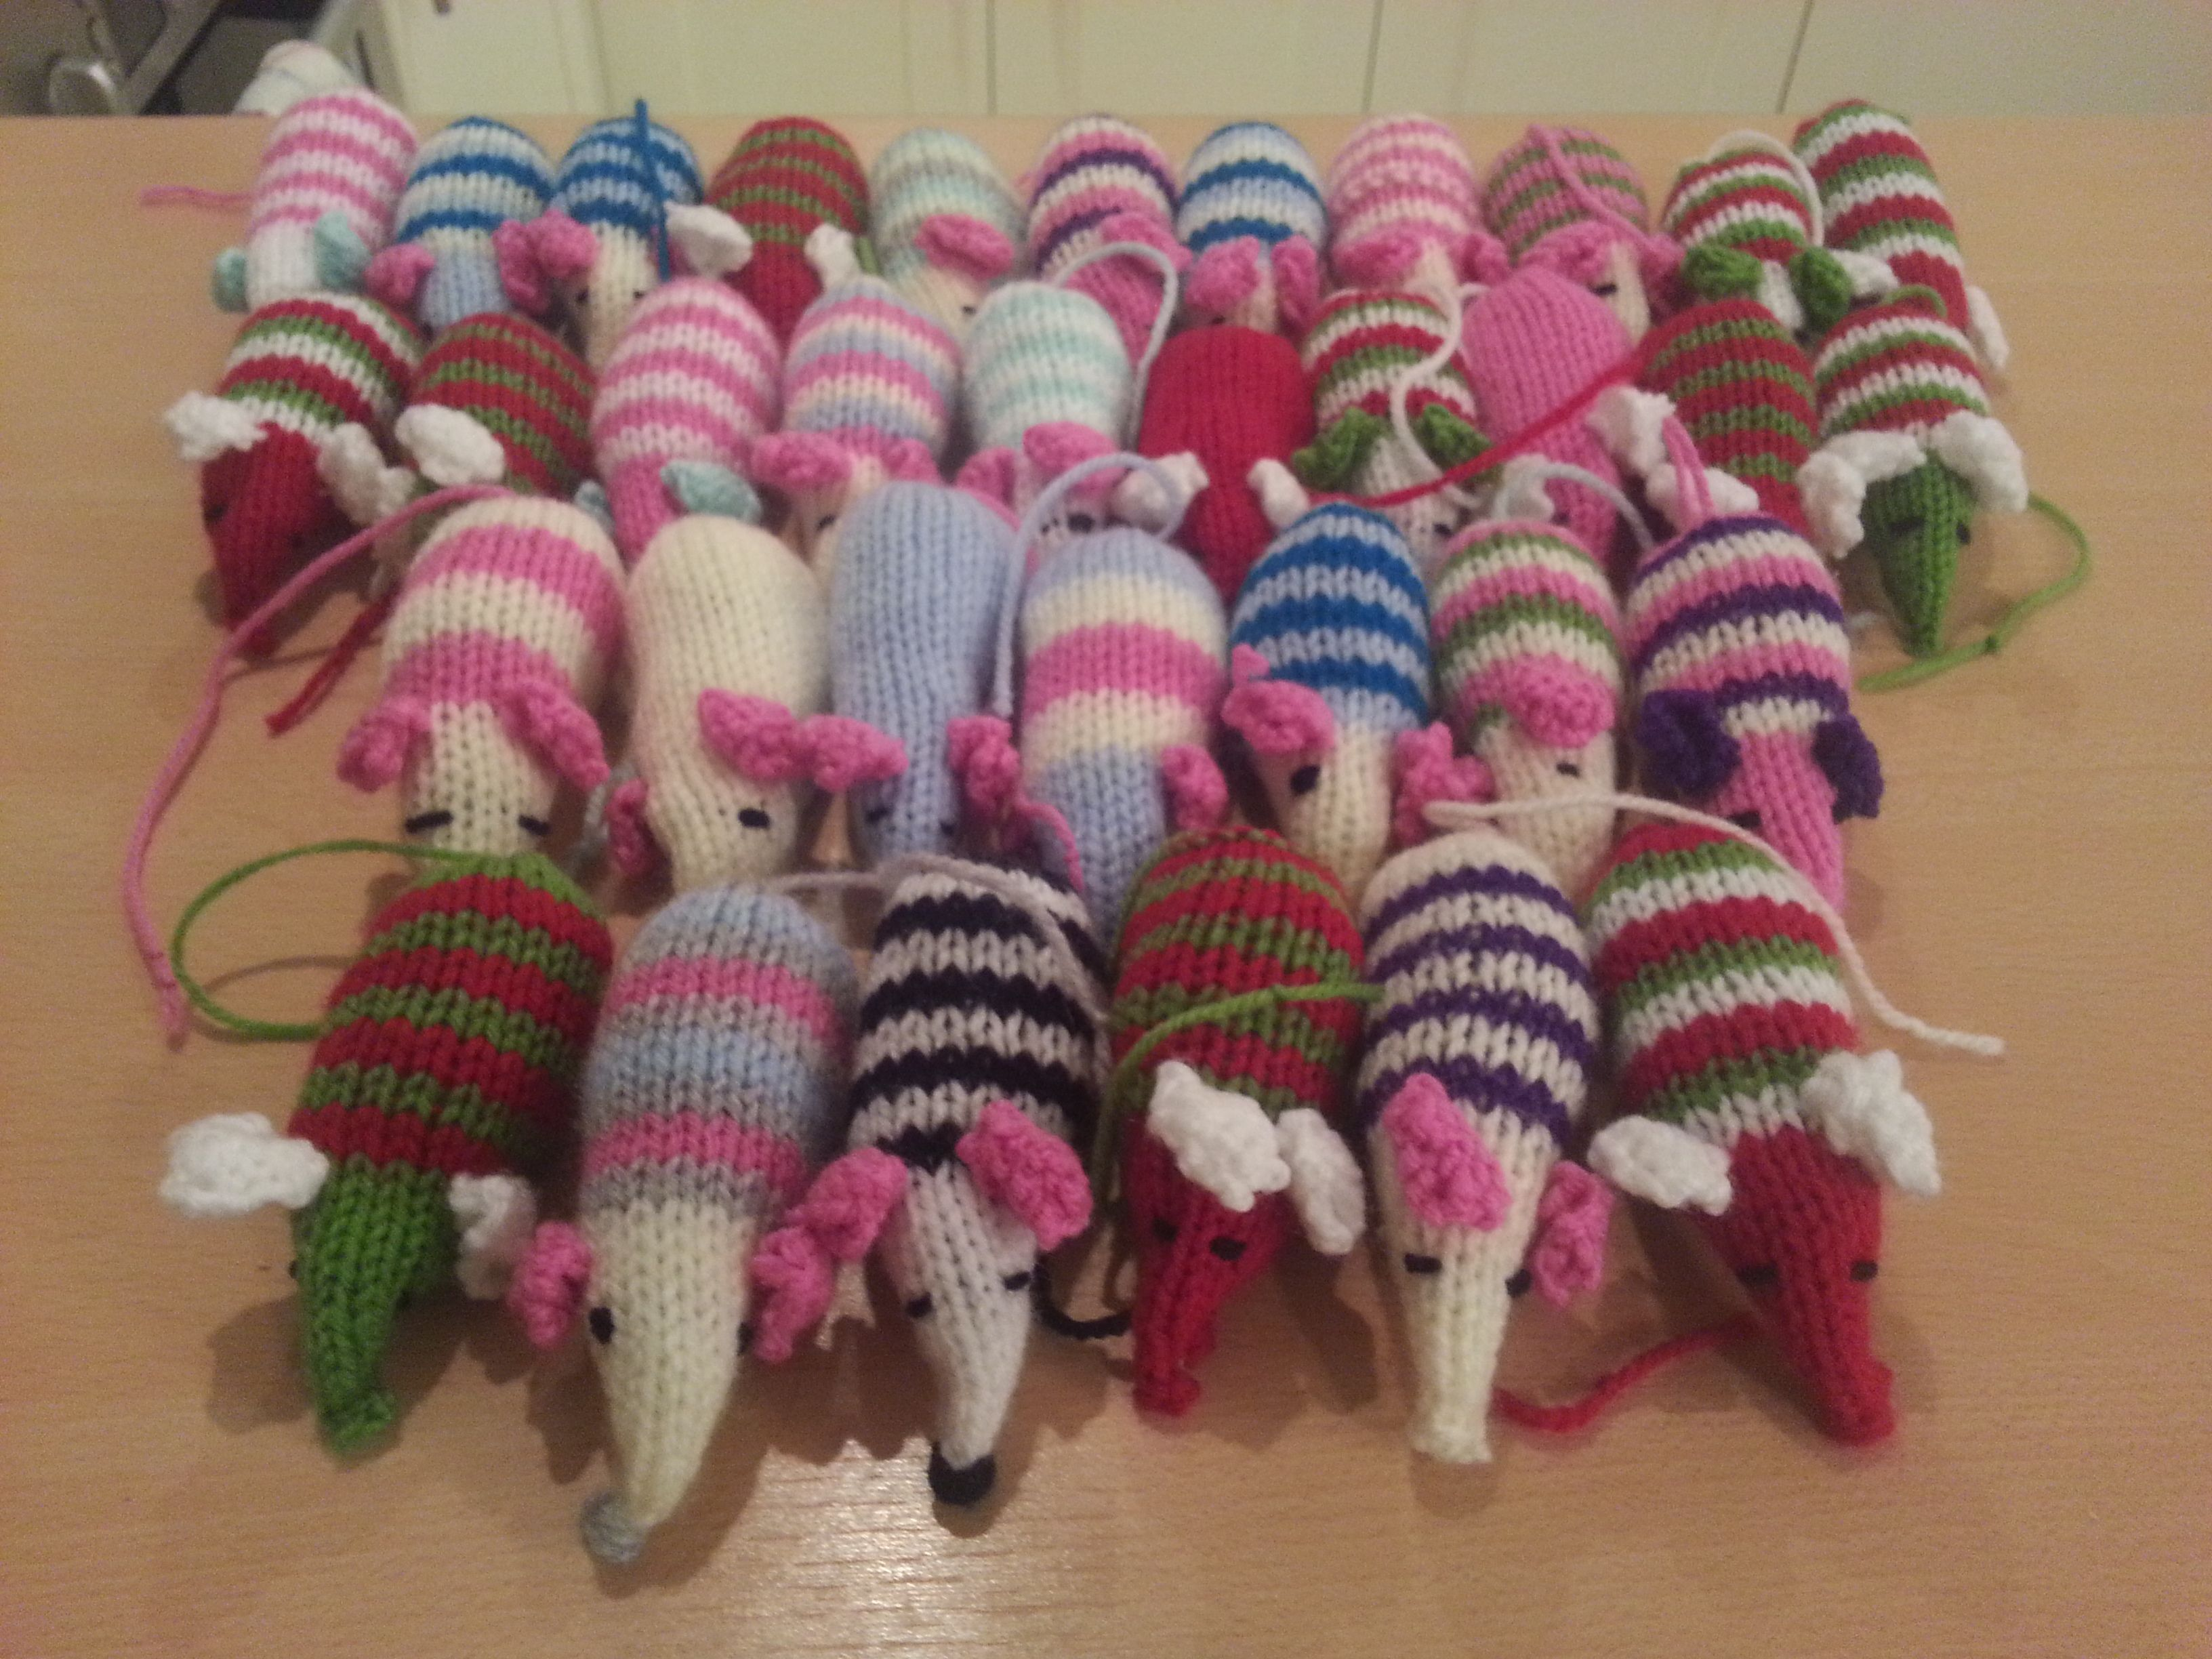 Loobylou creations themed crafts catnip mouse craft